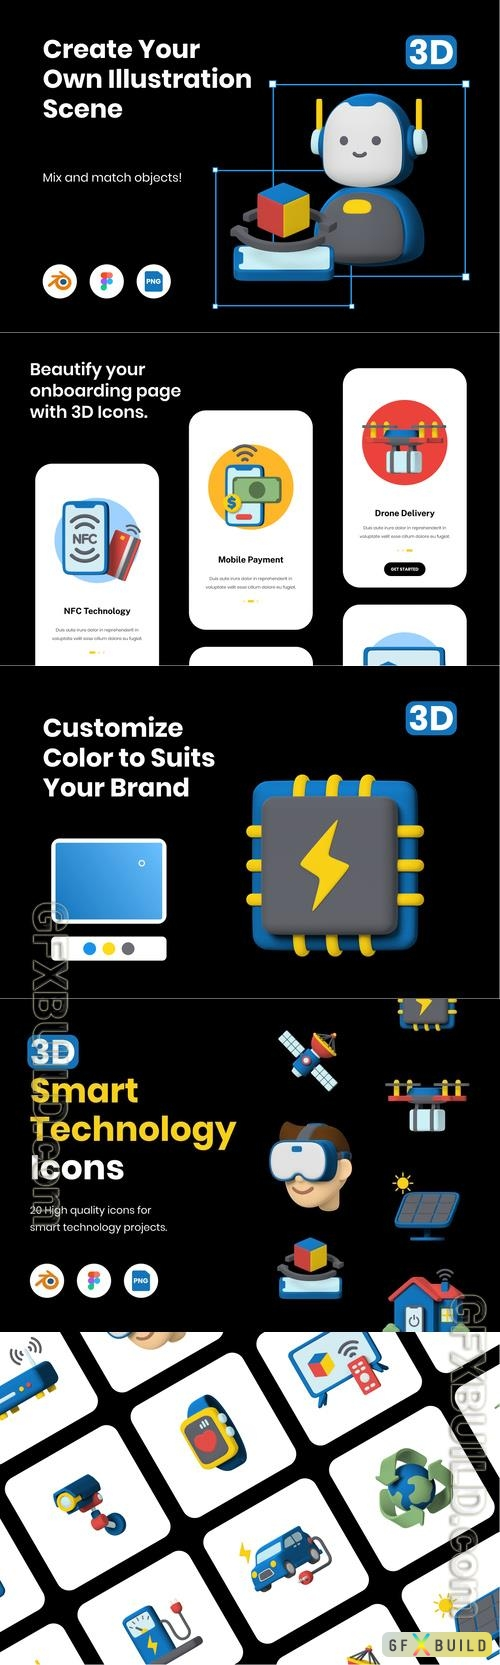 3D Smart Technology Icons